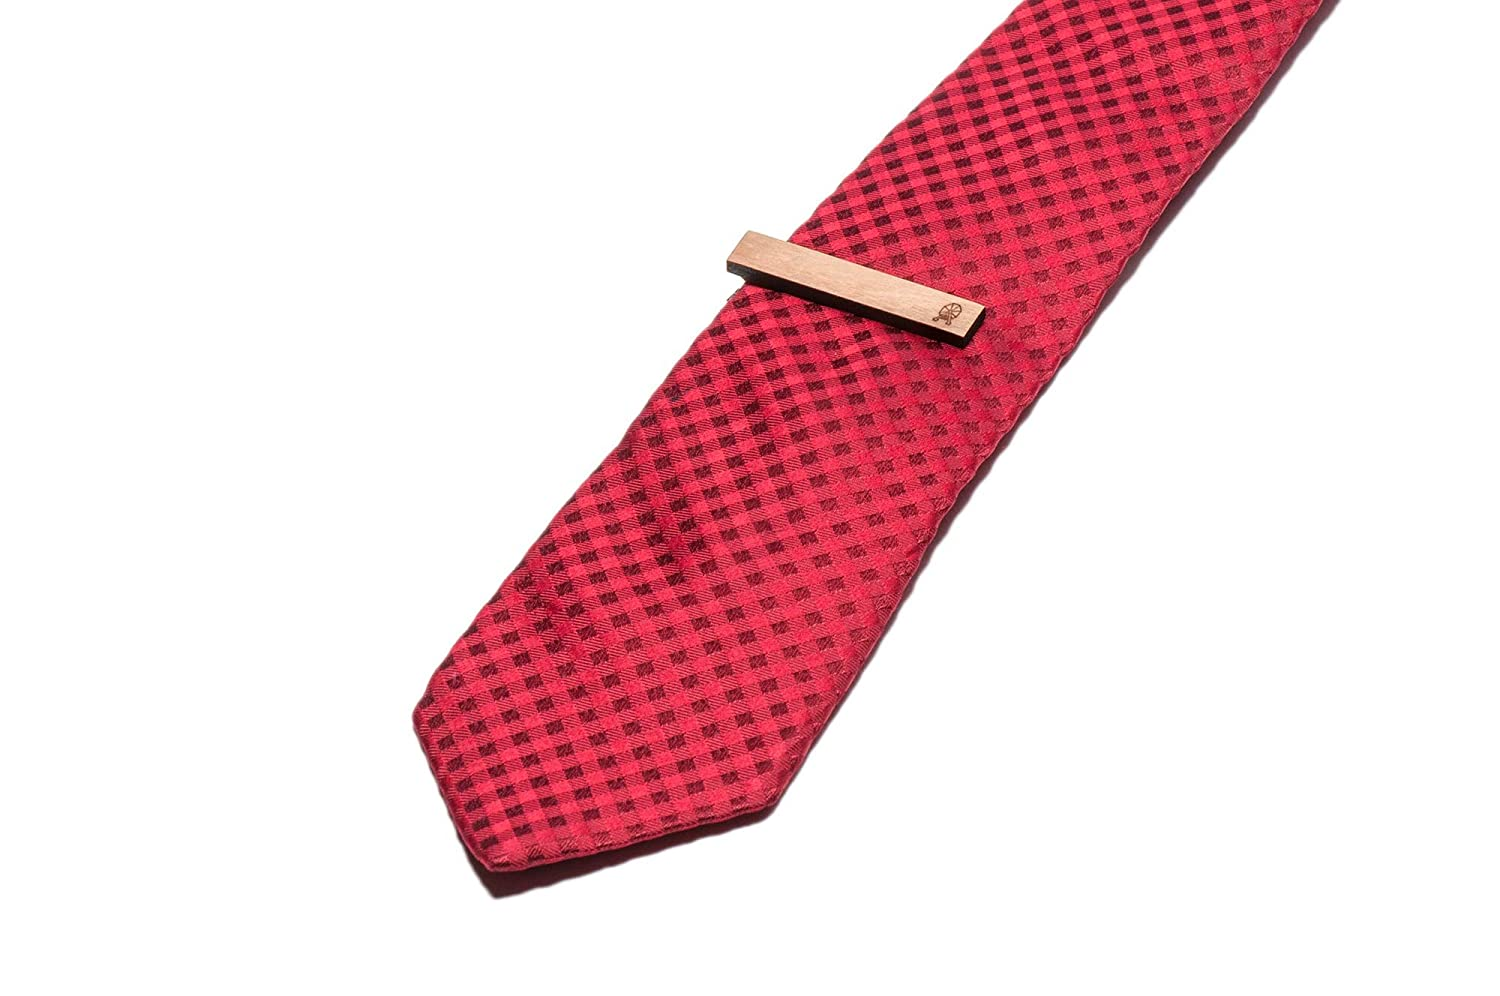 Wooden Accessories Company Wooden Tie Clips with Laser Engraved Lottery Drum Design Cherry Wood Tie Bar Engraved in The USA